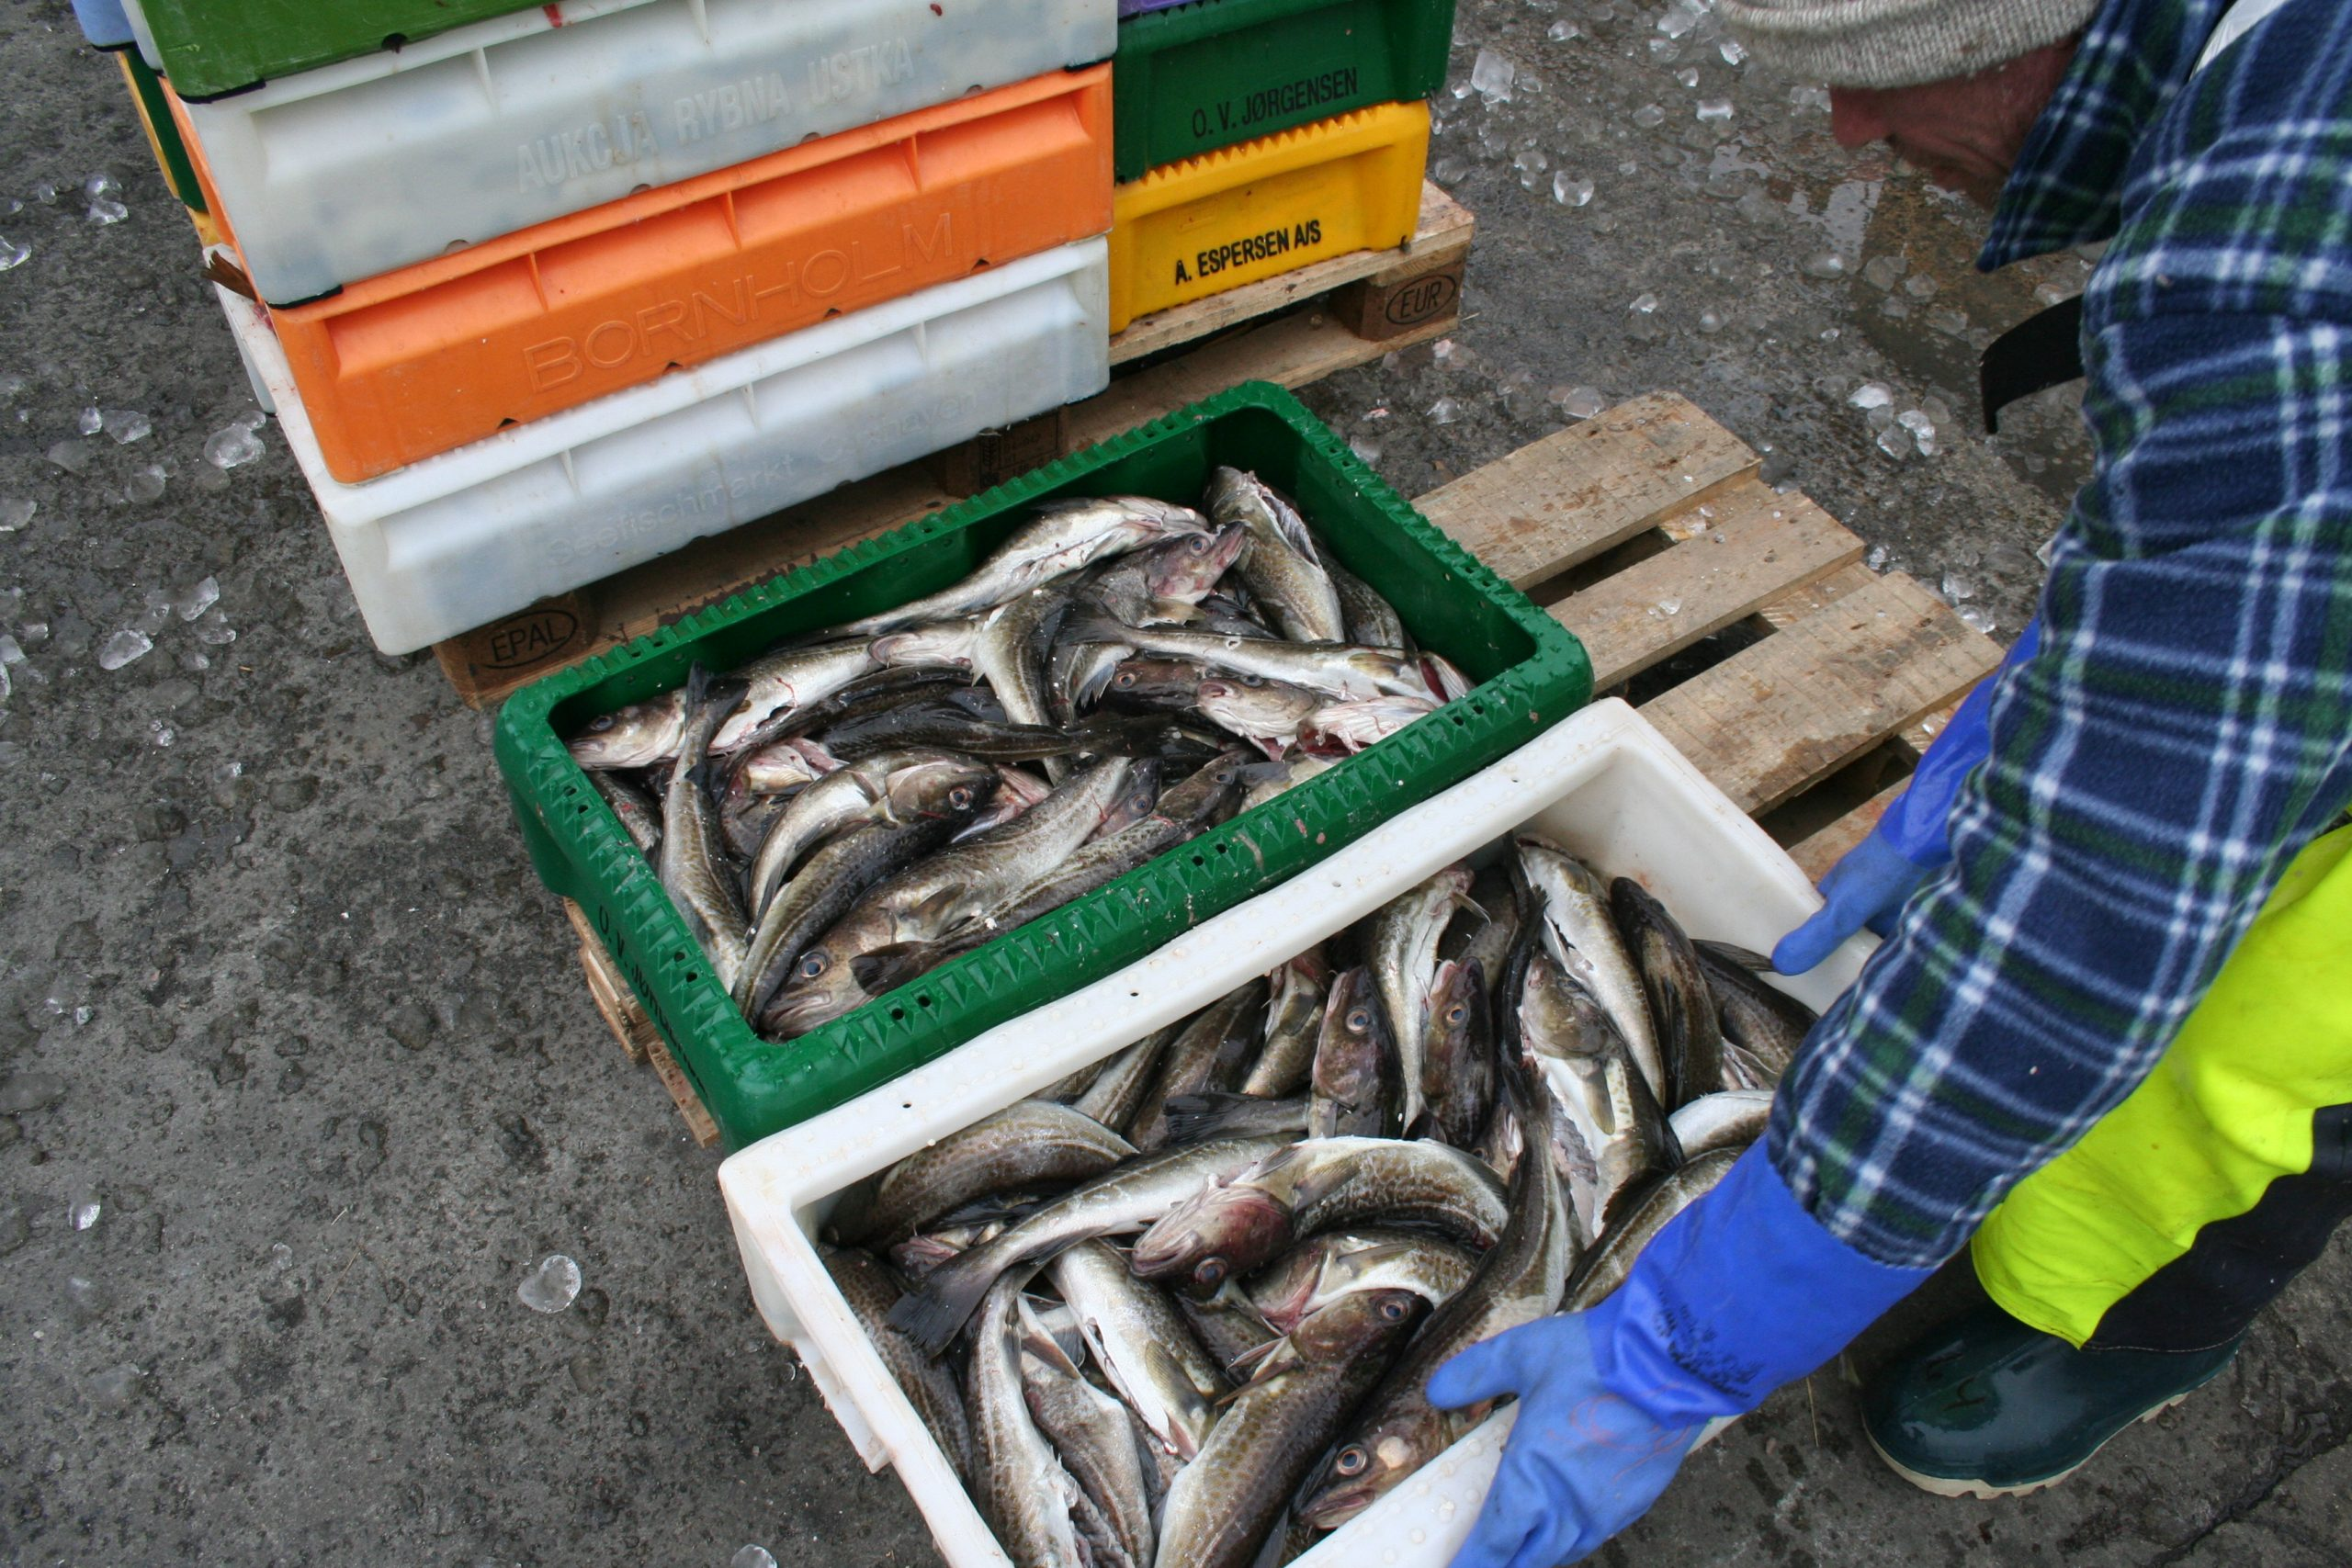 Folketing parties agree to distribute €123 million to Danish fisheries for projects including green fishing